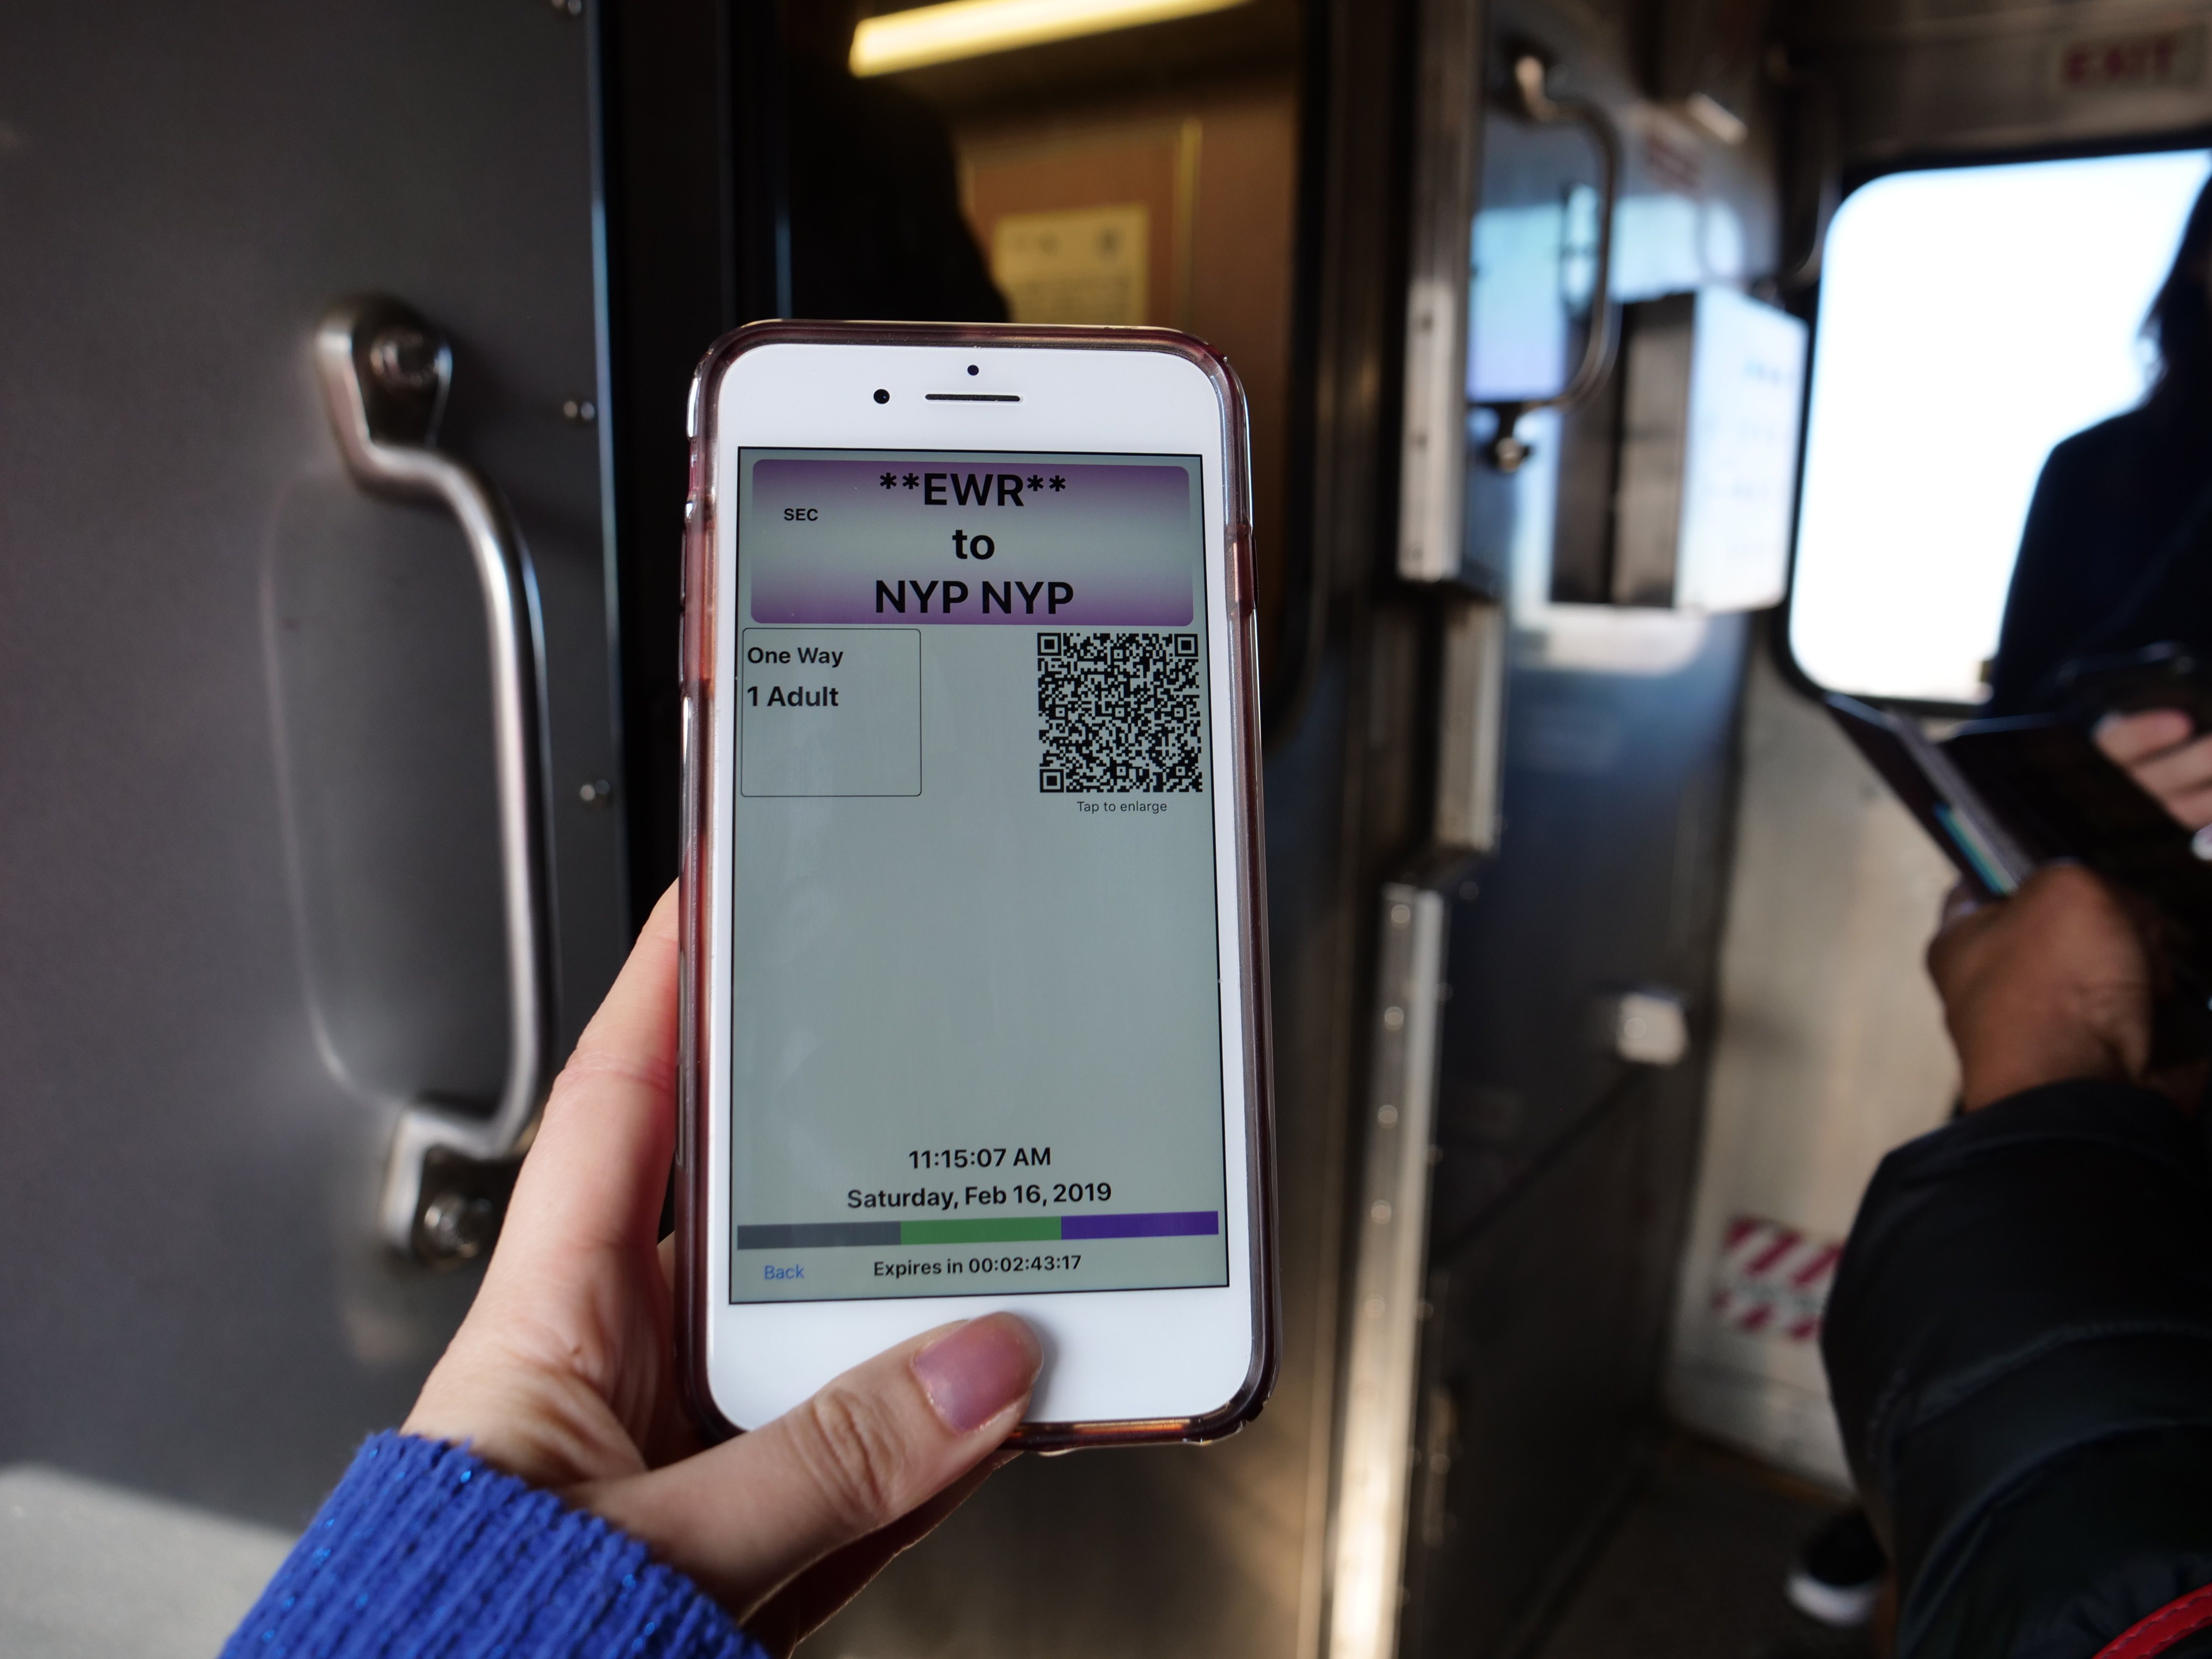 Airtrain NJ Transit Cheapest, Fastest Way from Newark to NYC Manhattan app on phone